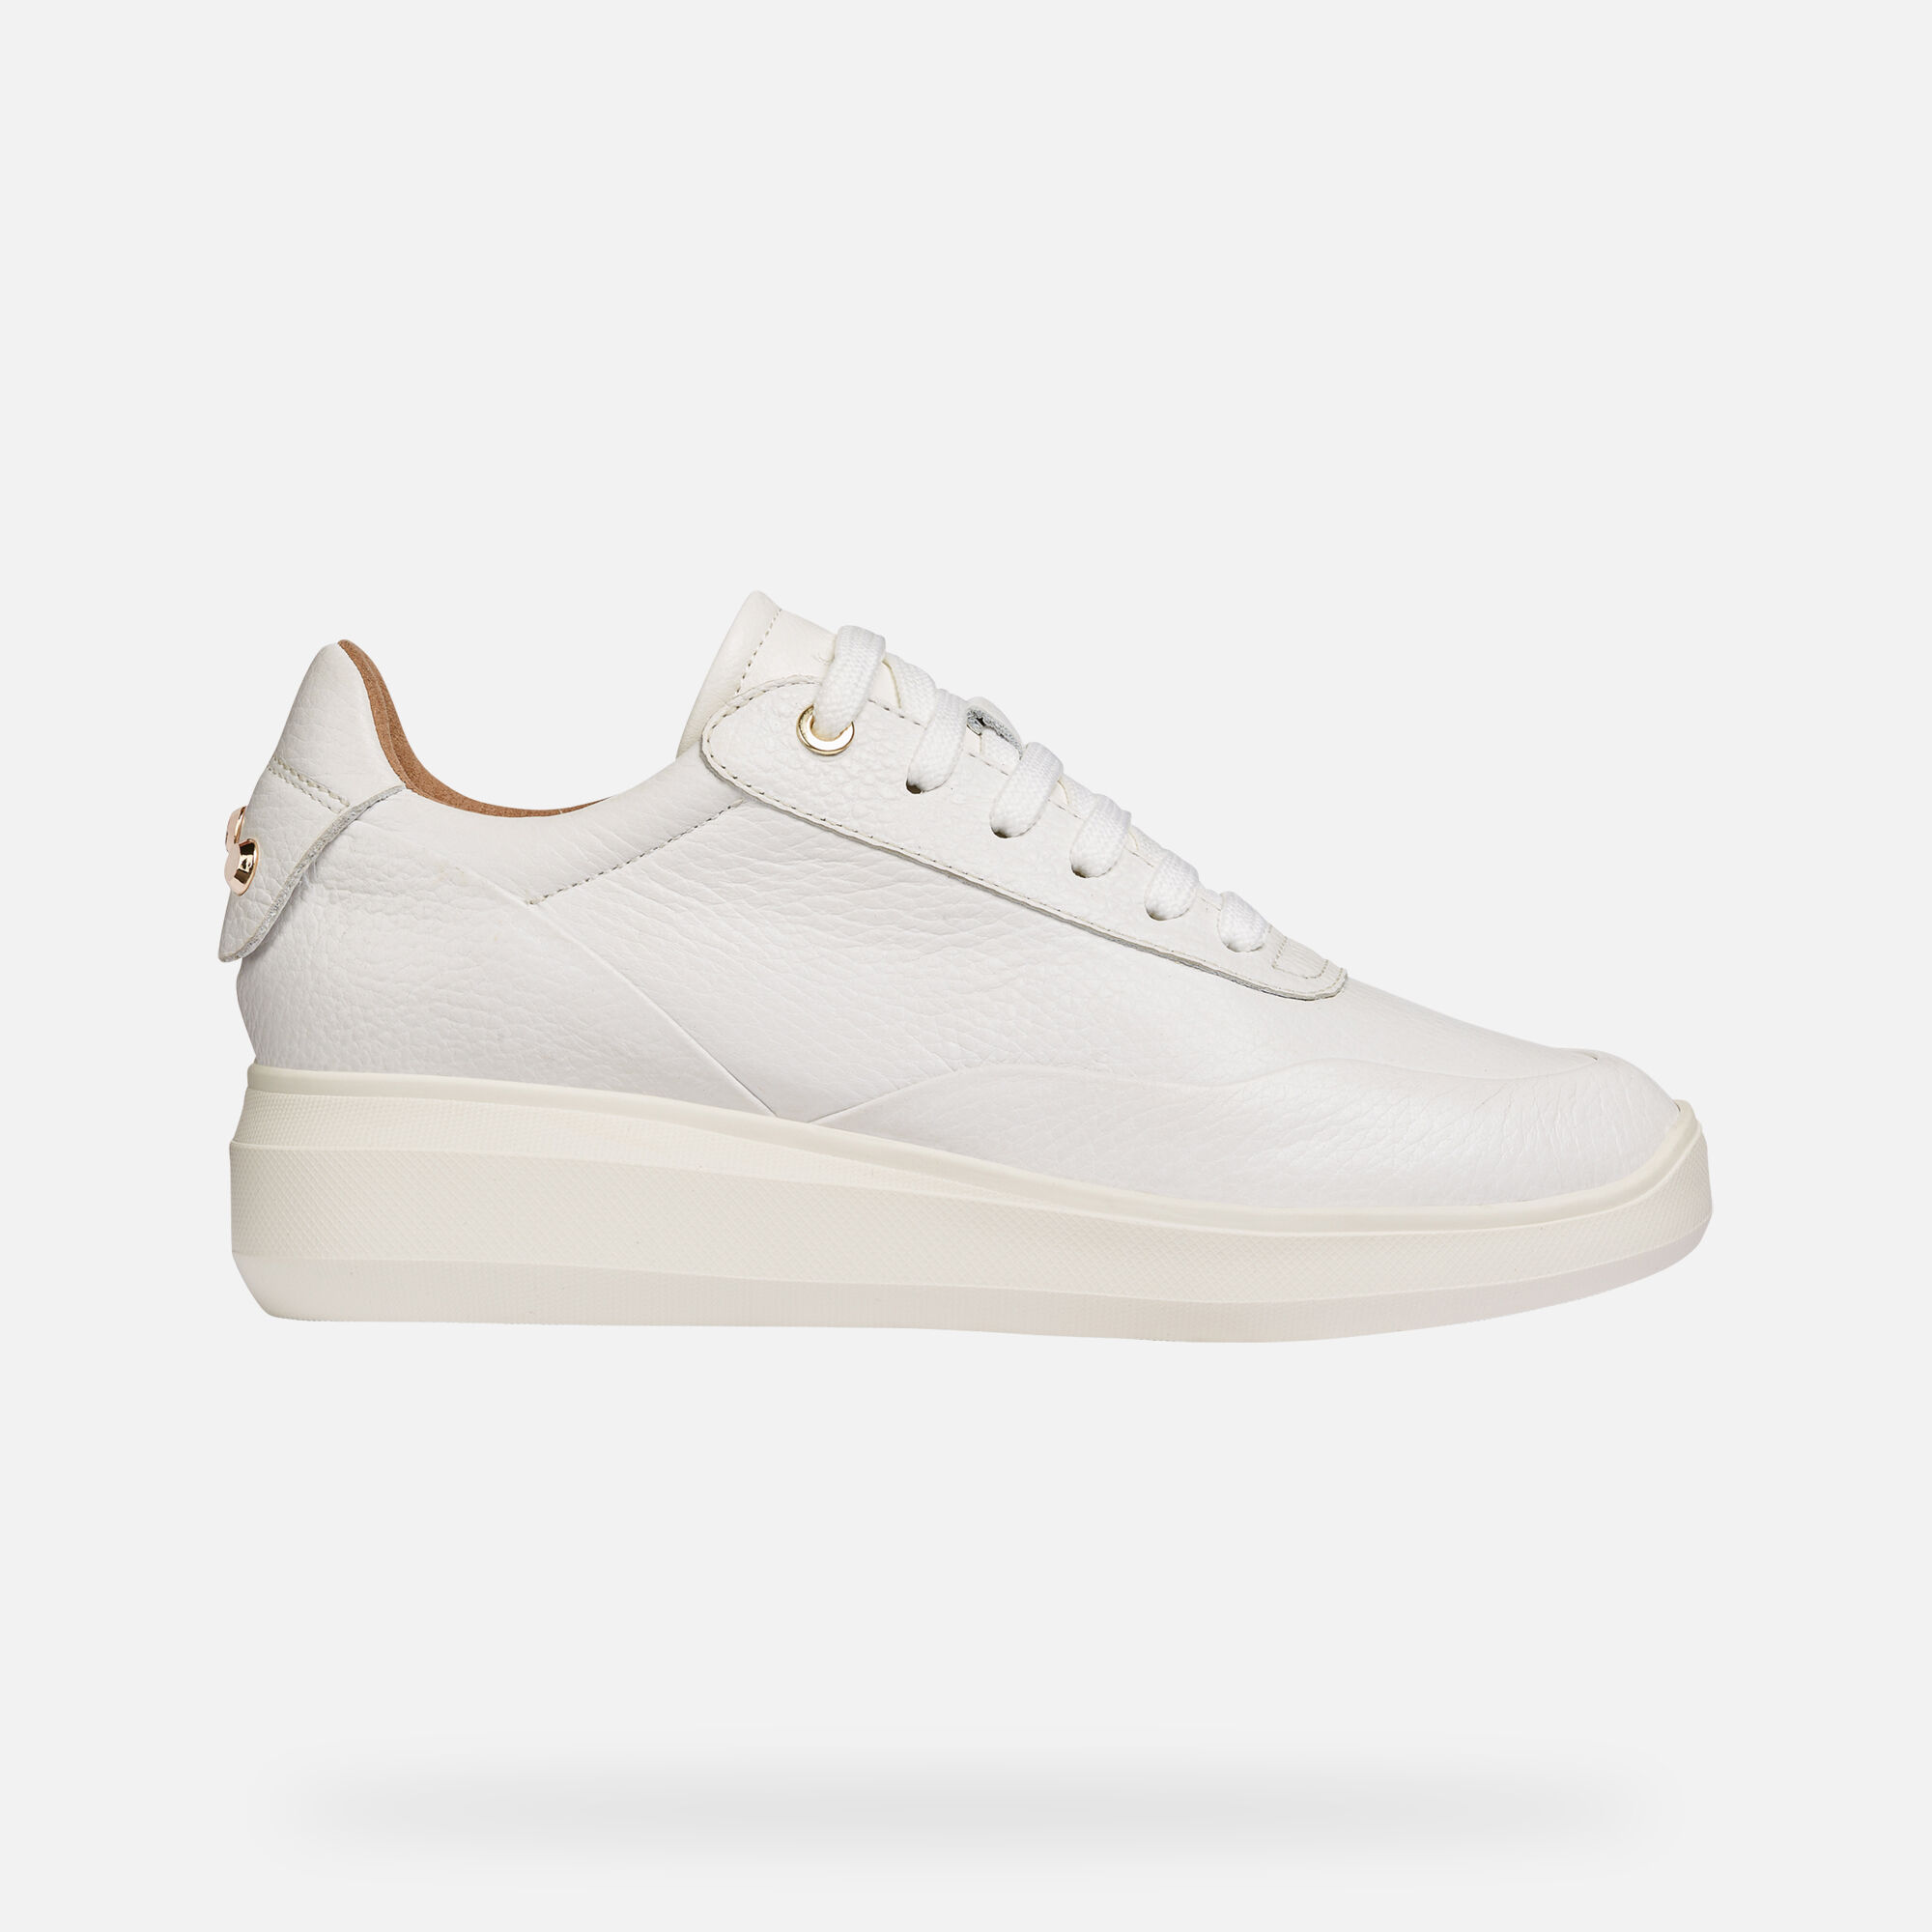 Geox Women's D RUBIDIA White Sneakers   Geox¨ Official Store